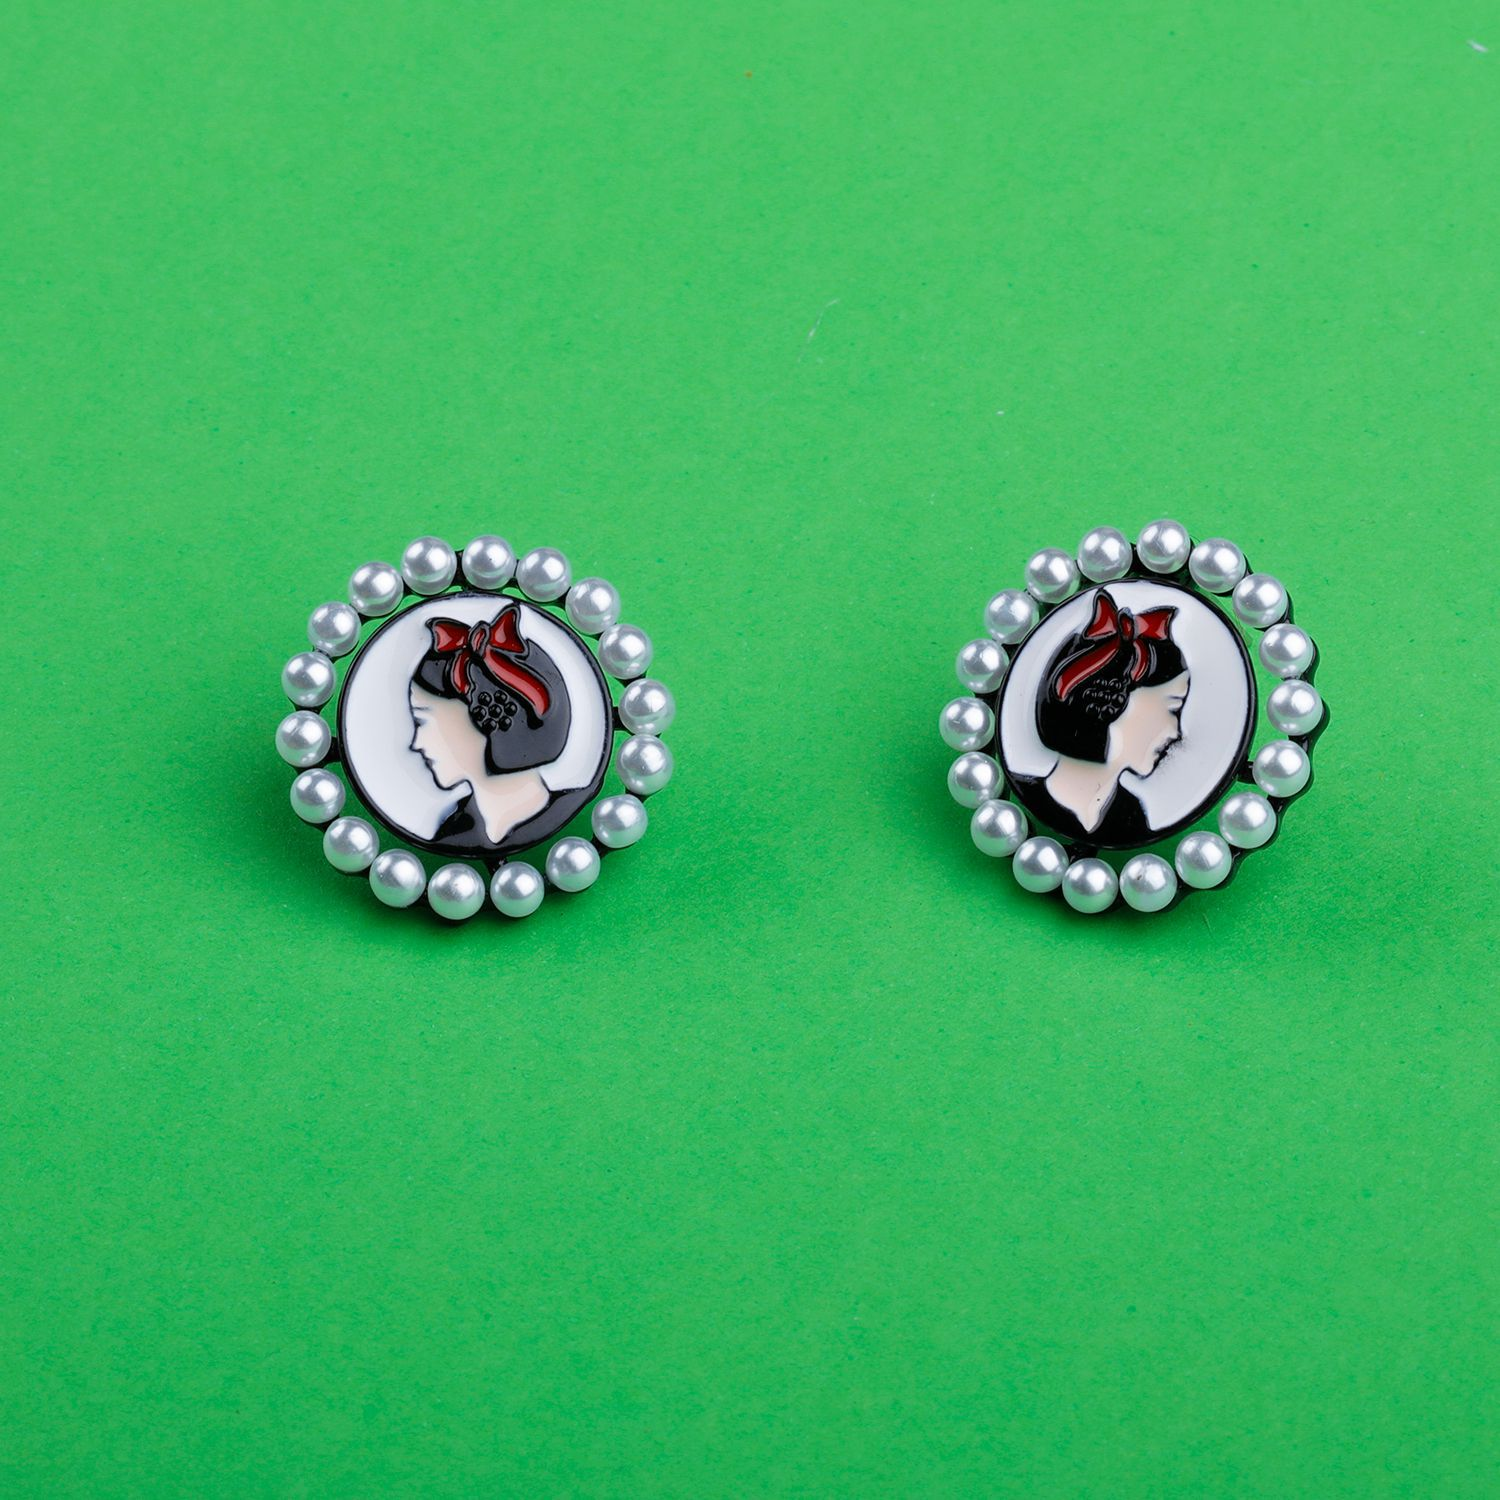 Silver Shine Elite Black Exclusive Unique Stud earring For Girls And Women